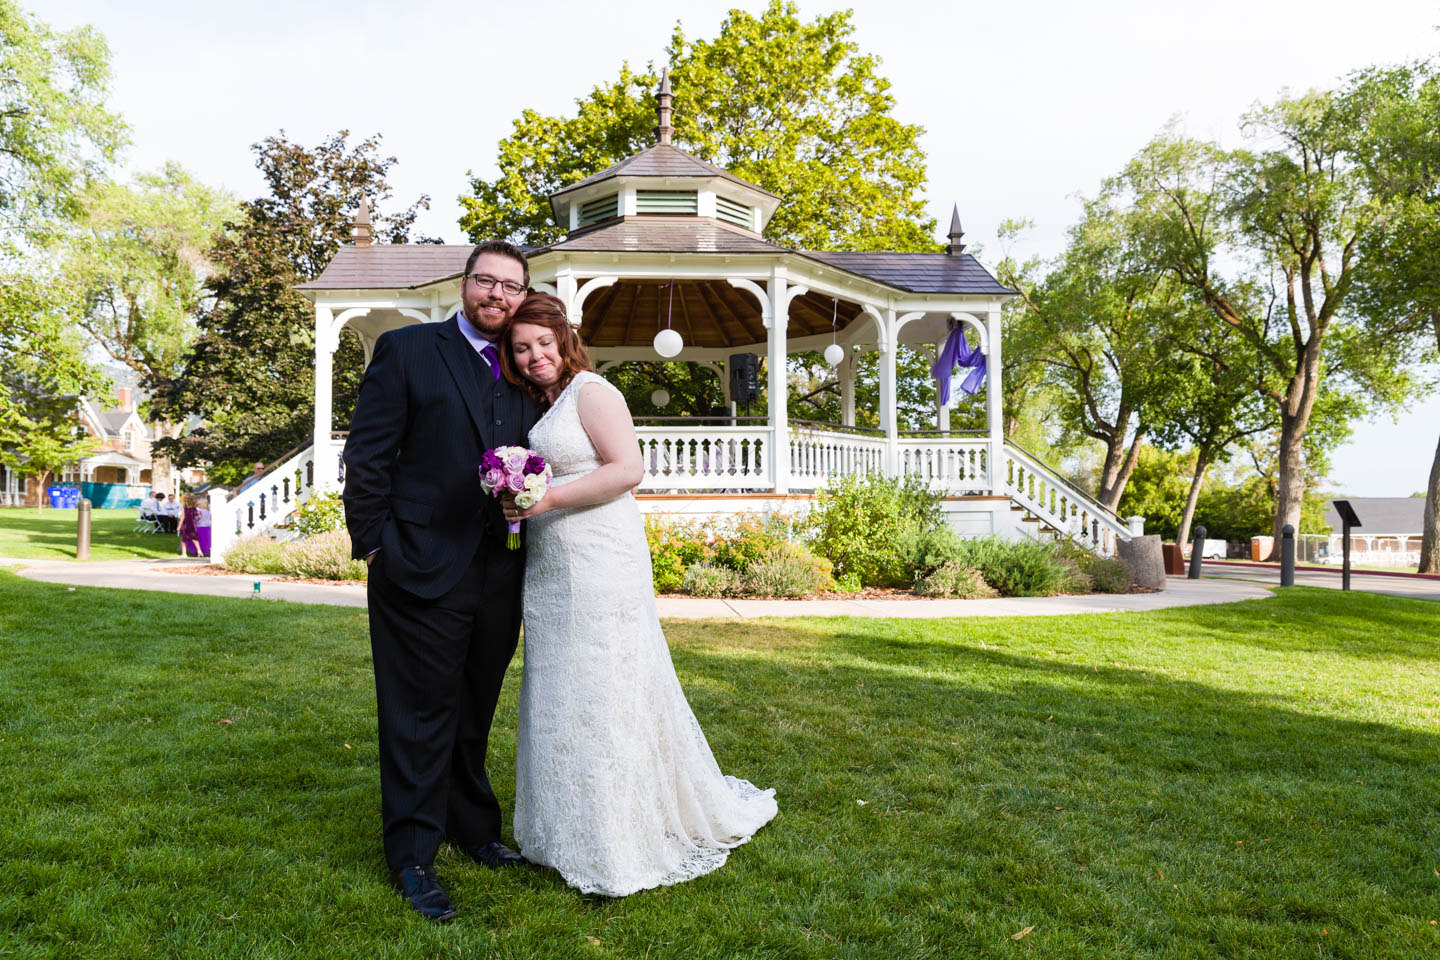 Eric and Lindsey with the bandstand in the background